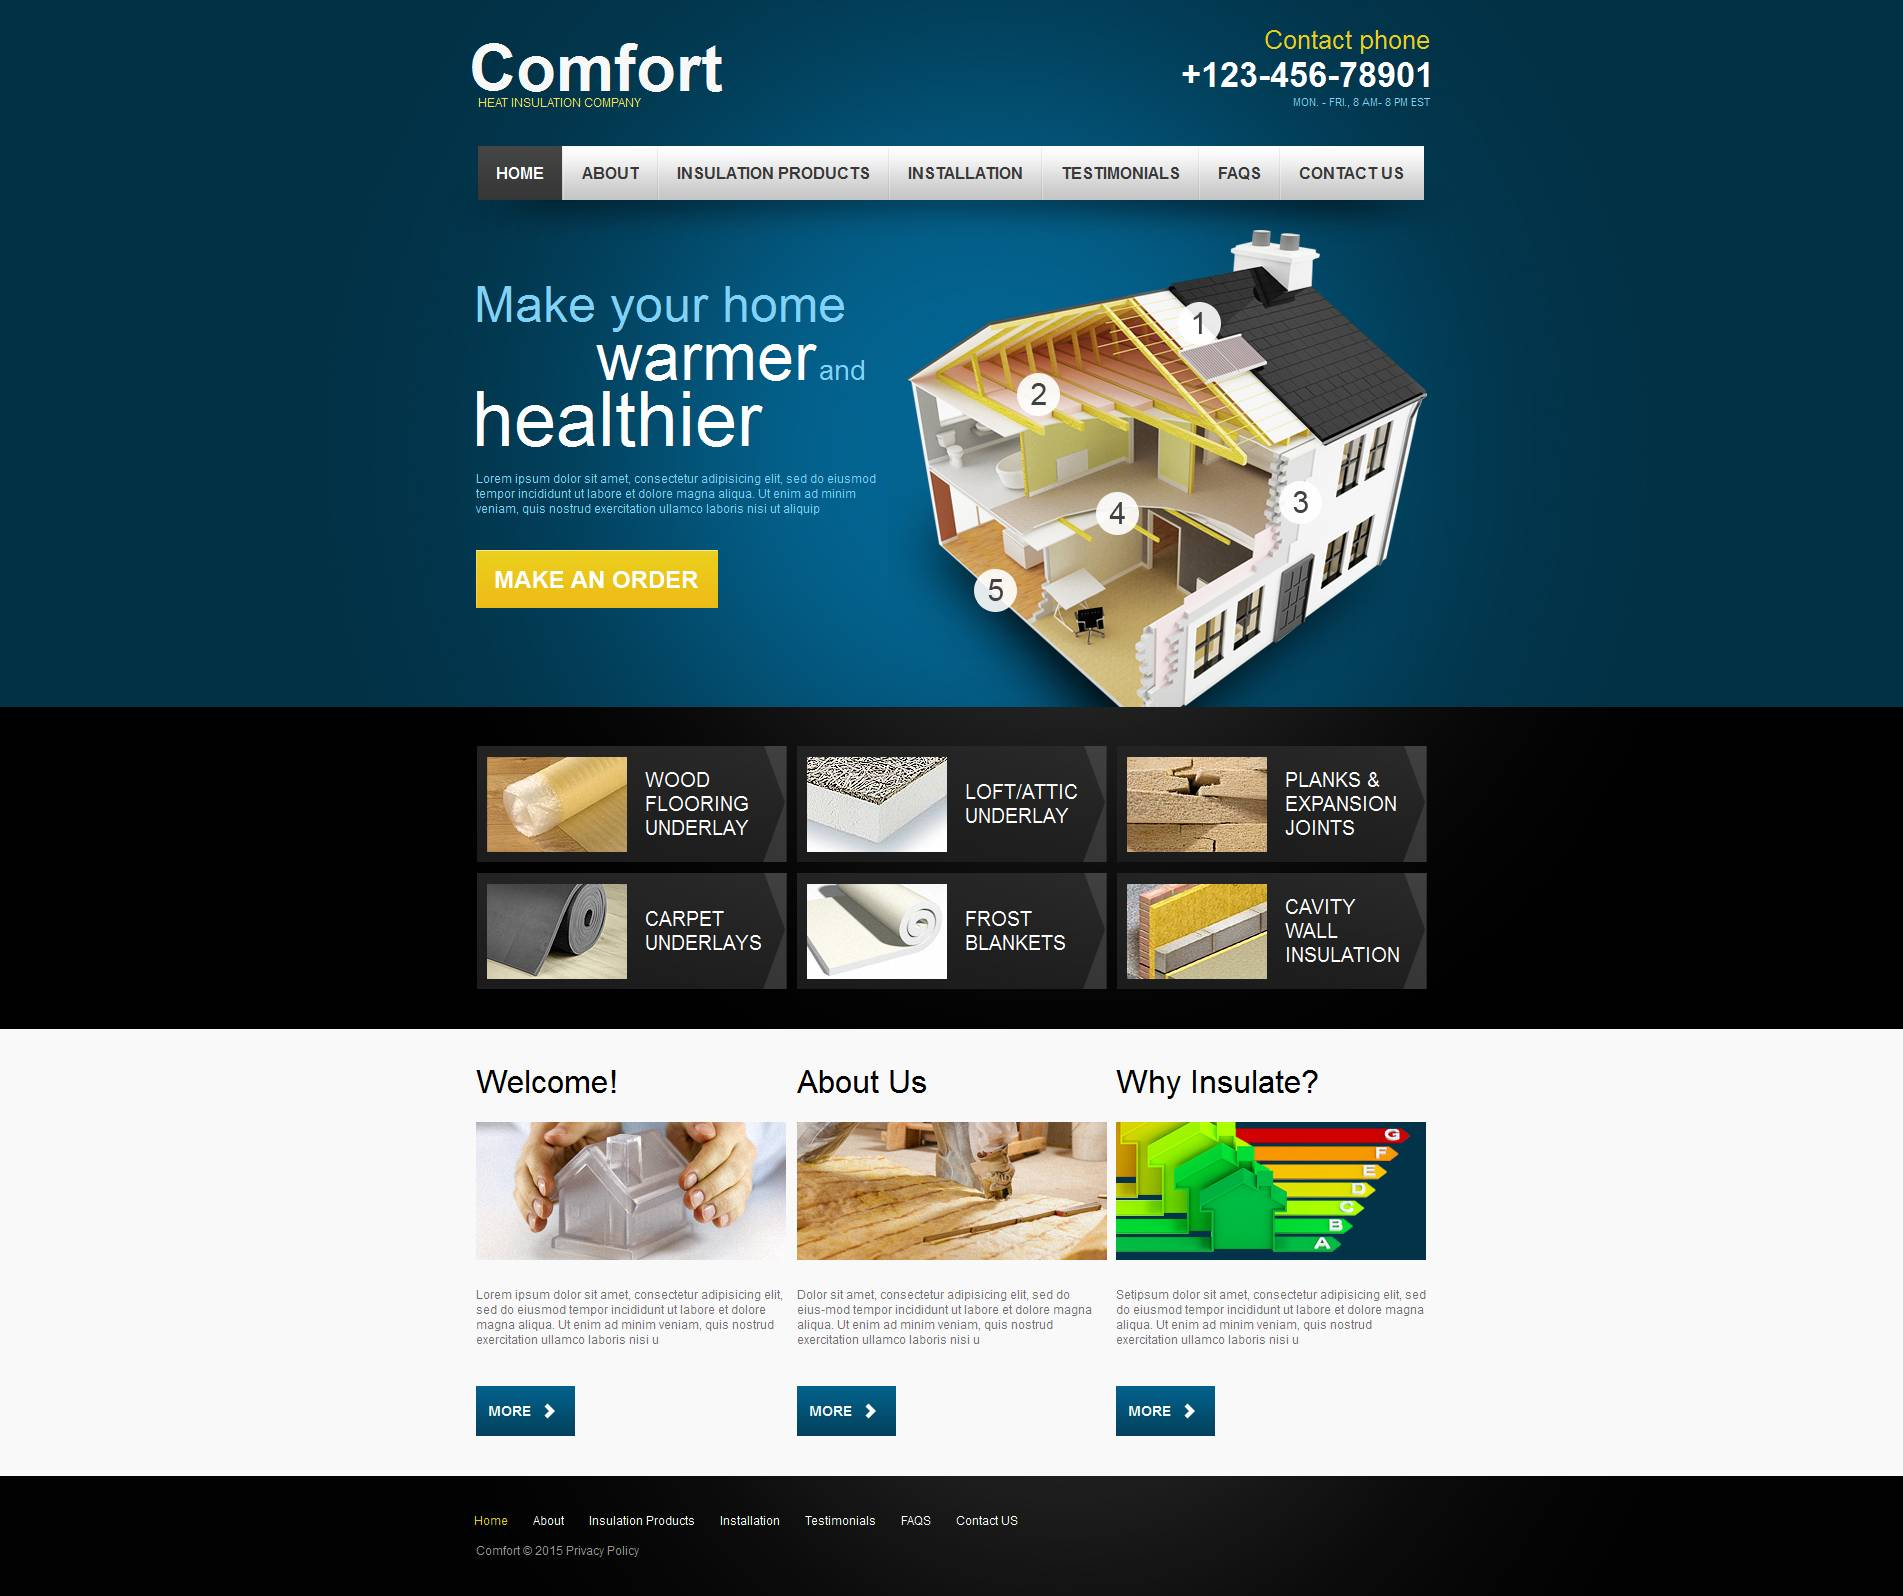 The Comfort Heat Moto CMS HTML Design 53630, one of the best Moto CMS HTML templates of its kind (most popular, maintenance services), also known as comfort heat Moto CMS HTML template, insulation Moto CMS HTML template, insulant Moto CMS HTML template, products Moto CMS HTML template, services Moto CMS HTML template, prices company Moto CMS HTML template, wood Moto CMS HTML template, flooring Moto CMS HTML template, loft Moto CMS HTML template, attic Moto CMS HTML template, carpet Moto CMS HTML template, cavity Moto CMS HTML template, underlays Moto CMS HTML template, testimonials Moto CMS HTML template, cocoon Moto CMS HTML template, lopyester Moto CMS HTML template, greenstuf and related with comfort heat, insulation, insulant, products, services, prices company, wood, flooring, loft, attic, carpet, cavity, underlays, testimonials, cocoon, lopyester, greenstuf, etc.